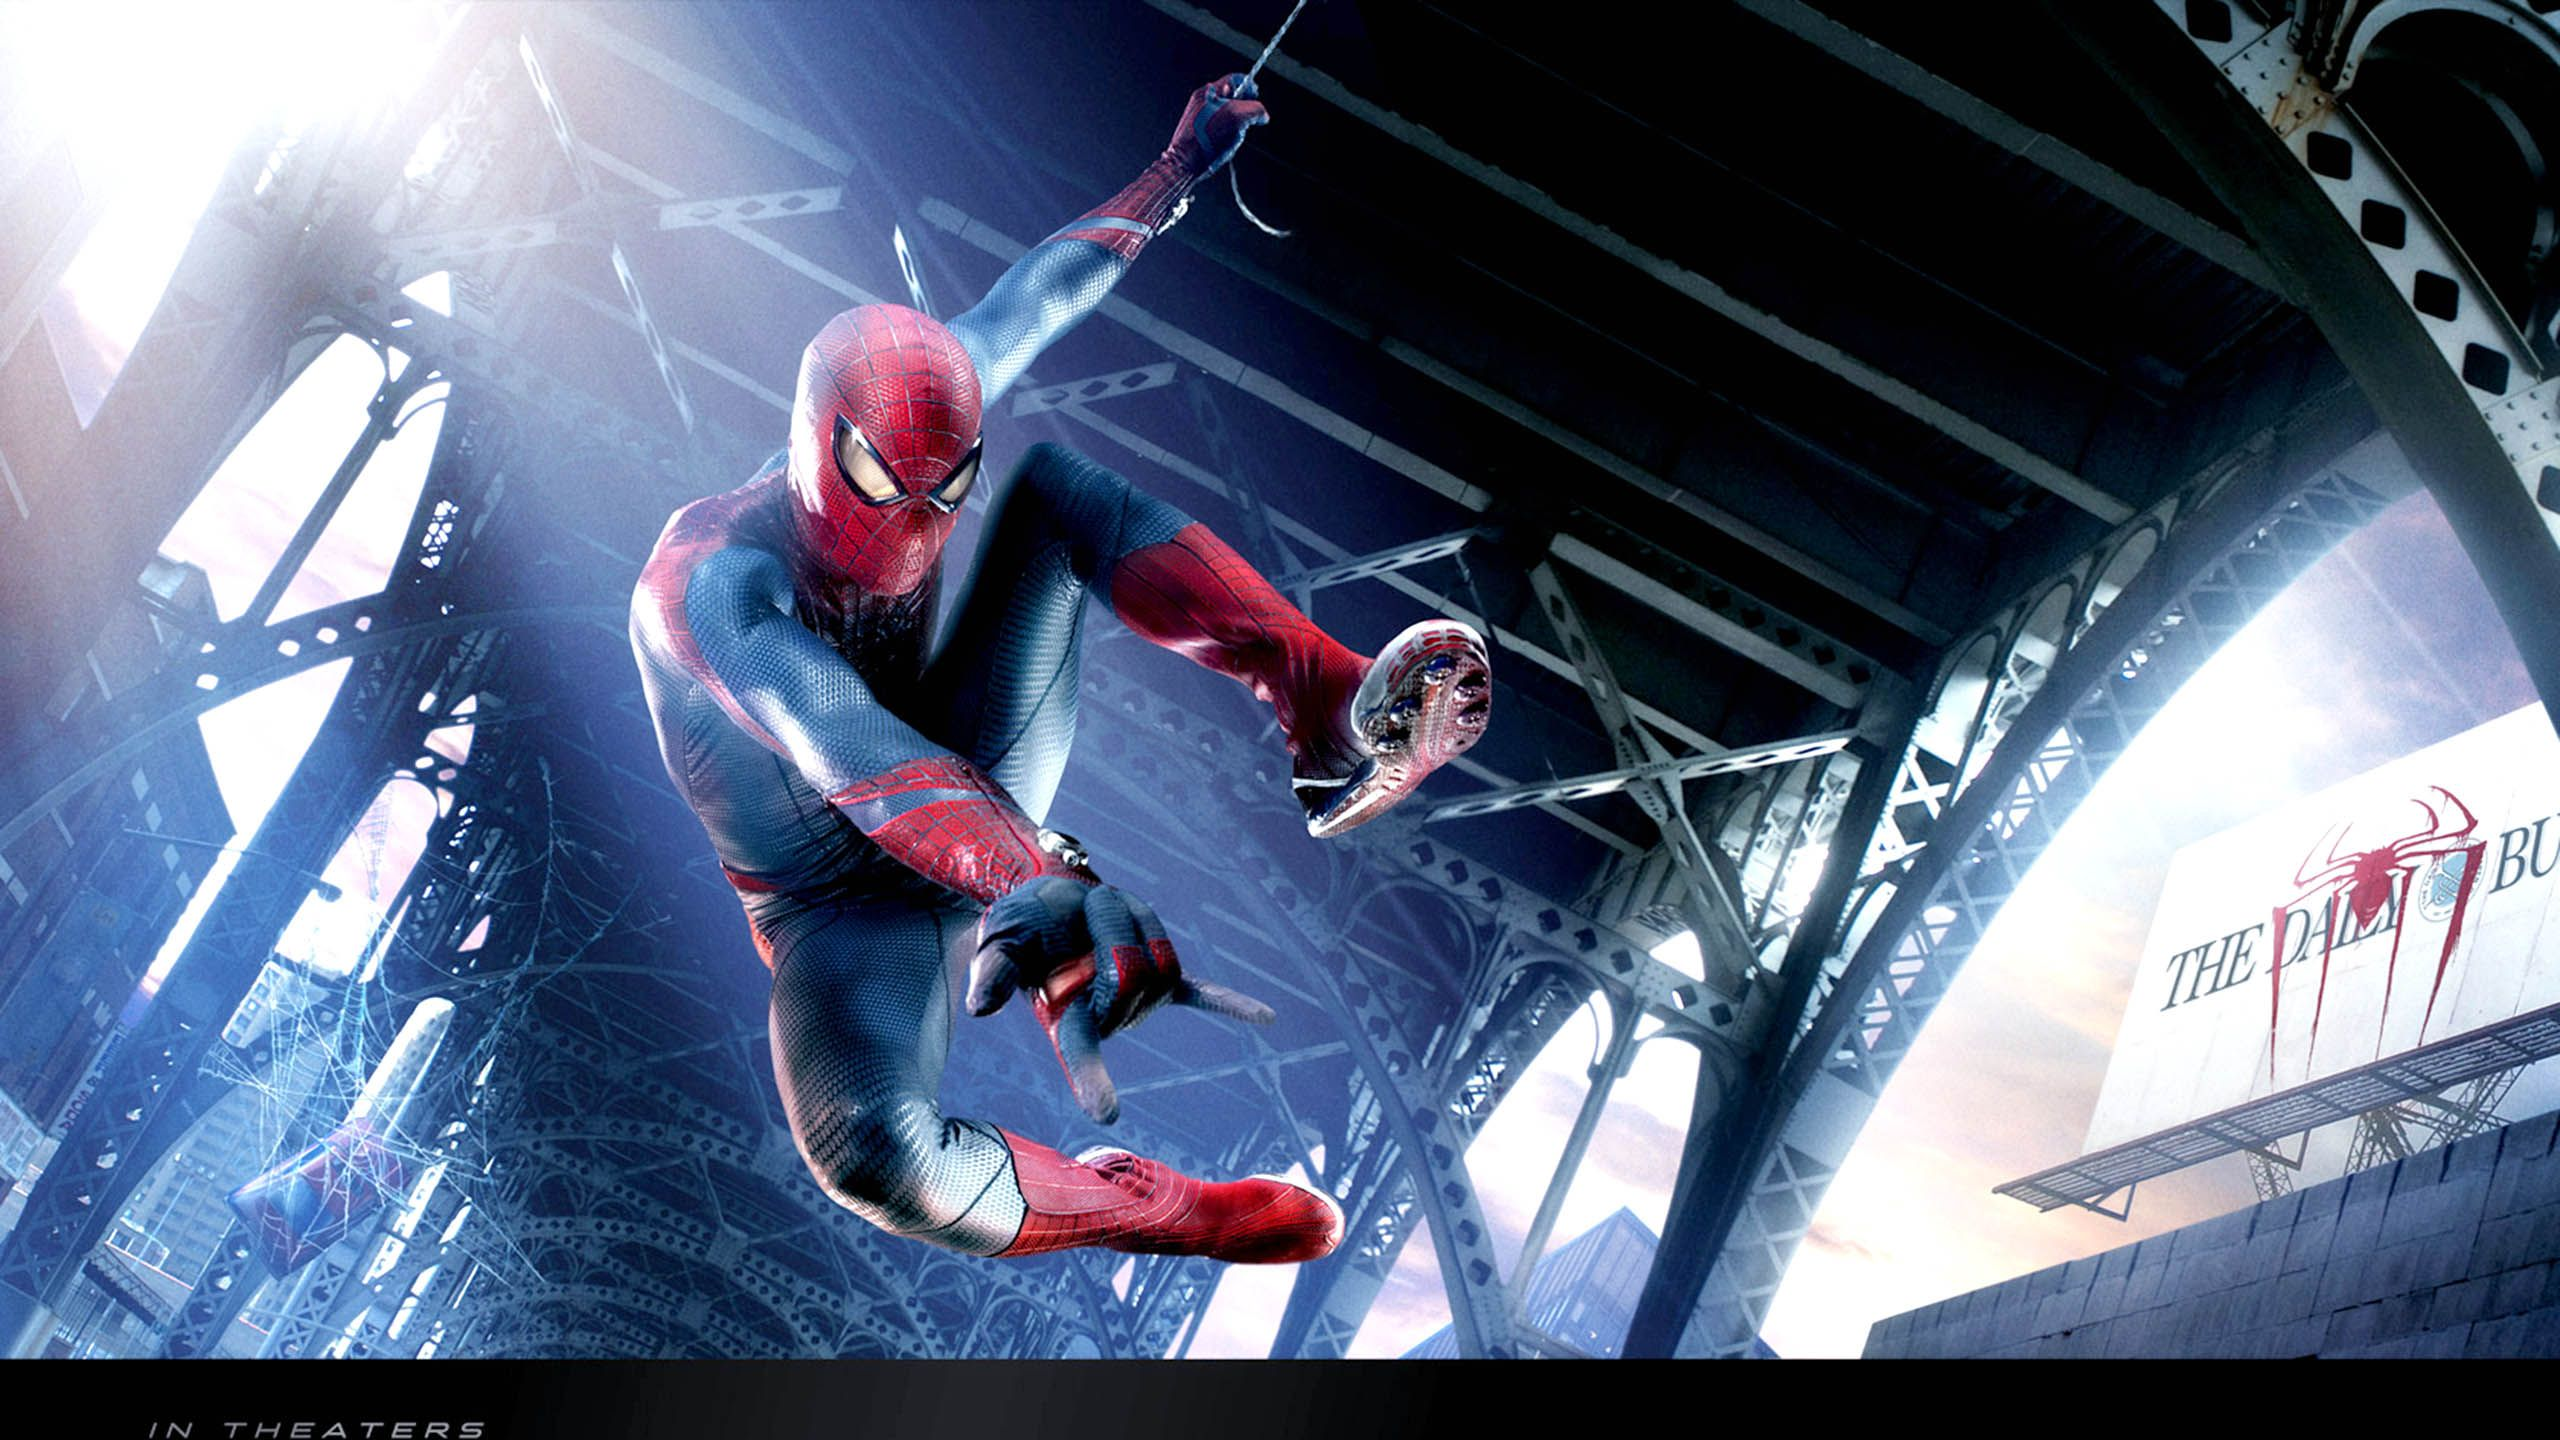 Spiderman Live Wallpaper Hd: Http://1080wallpaper.net